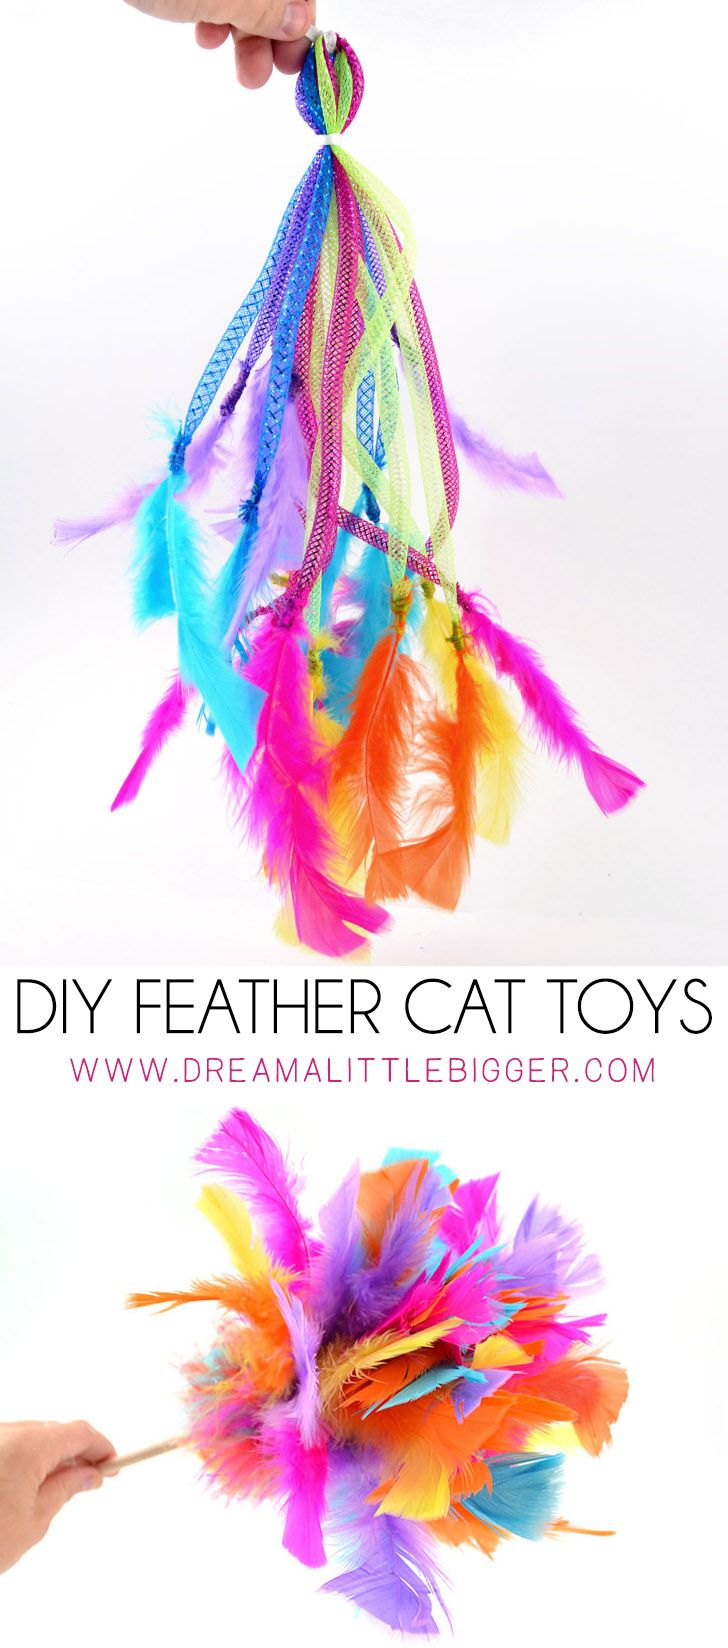 If your kitty loves feathers, and what cat doesn't, she's going to LOVE these DIY feather toys you can make from her. So much sturdier than store bought and cats love homemade! #ad